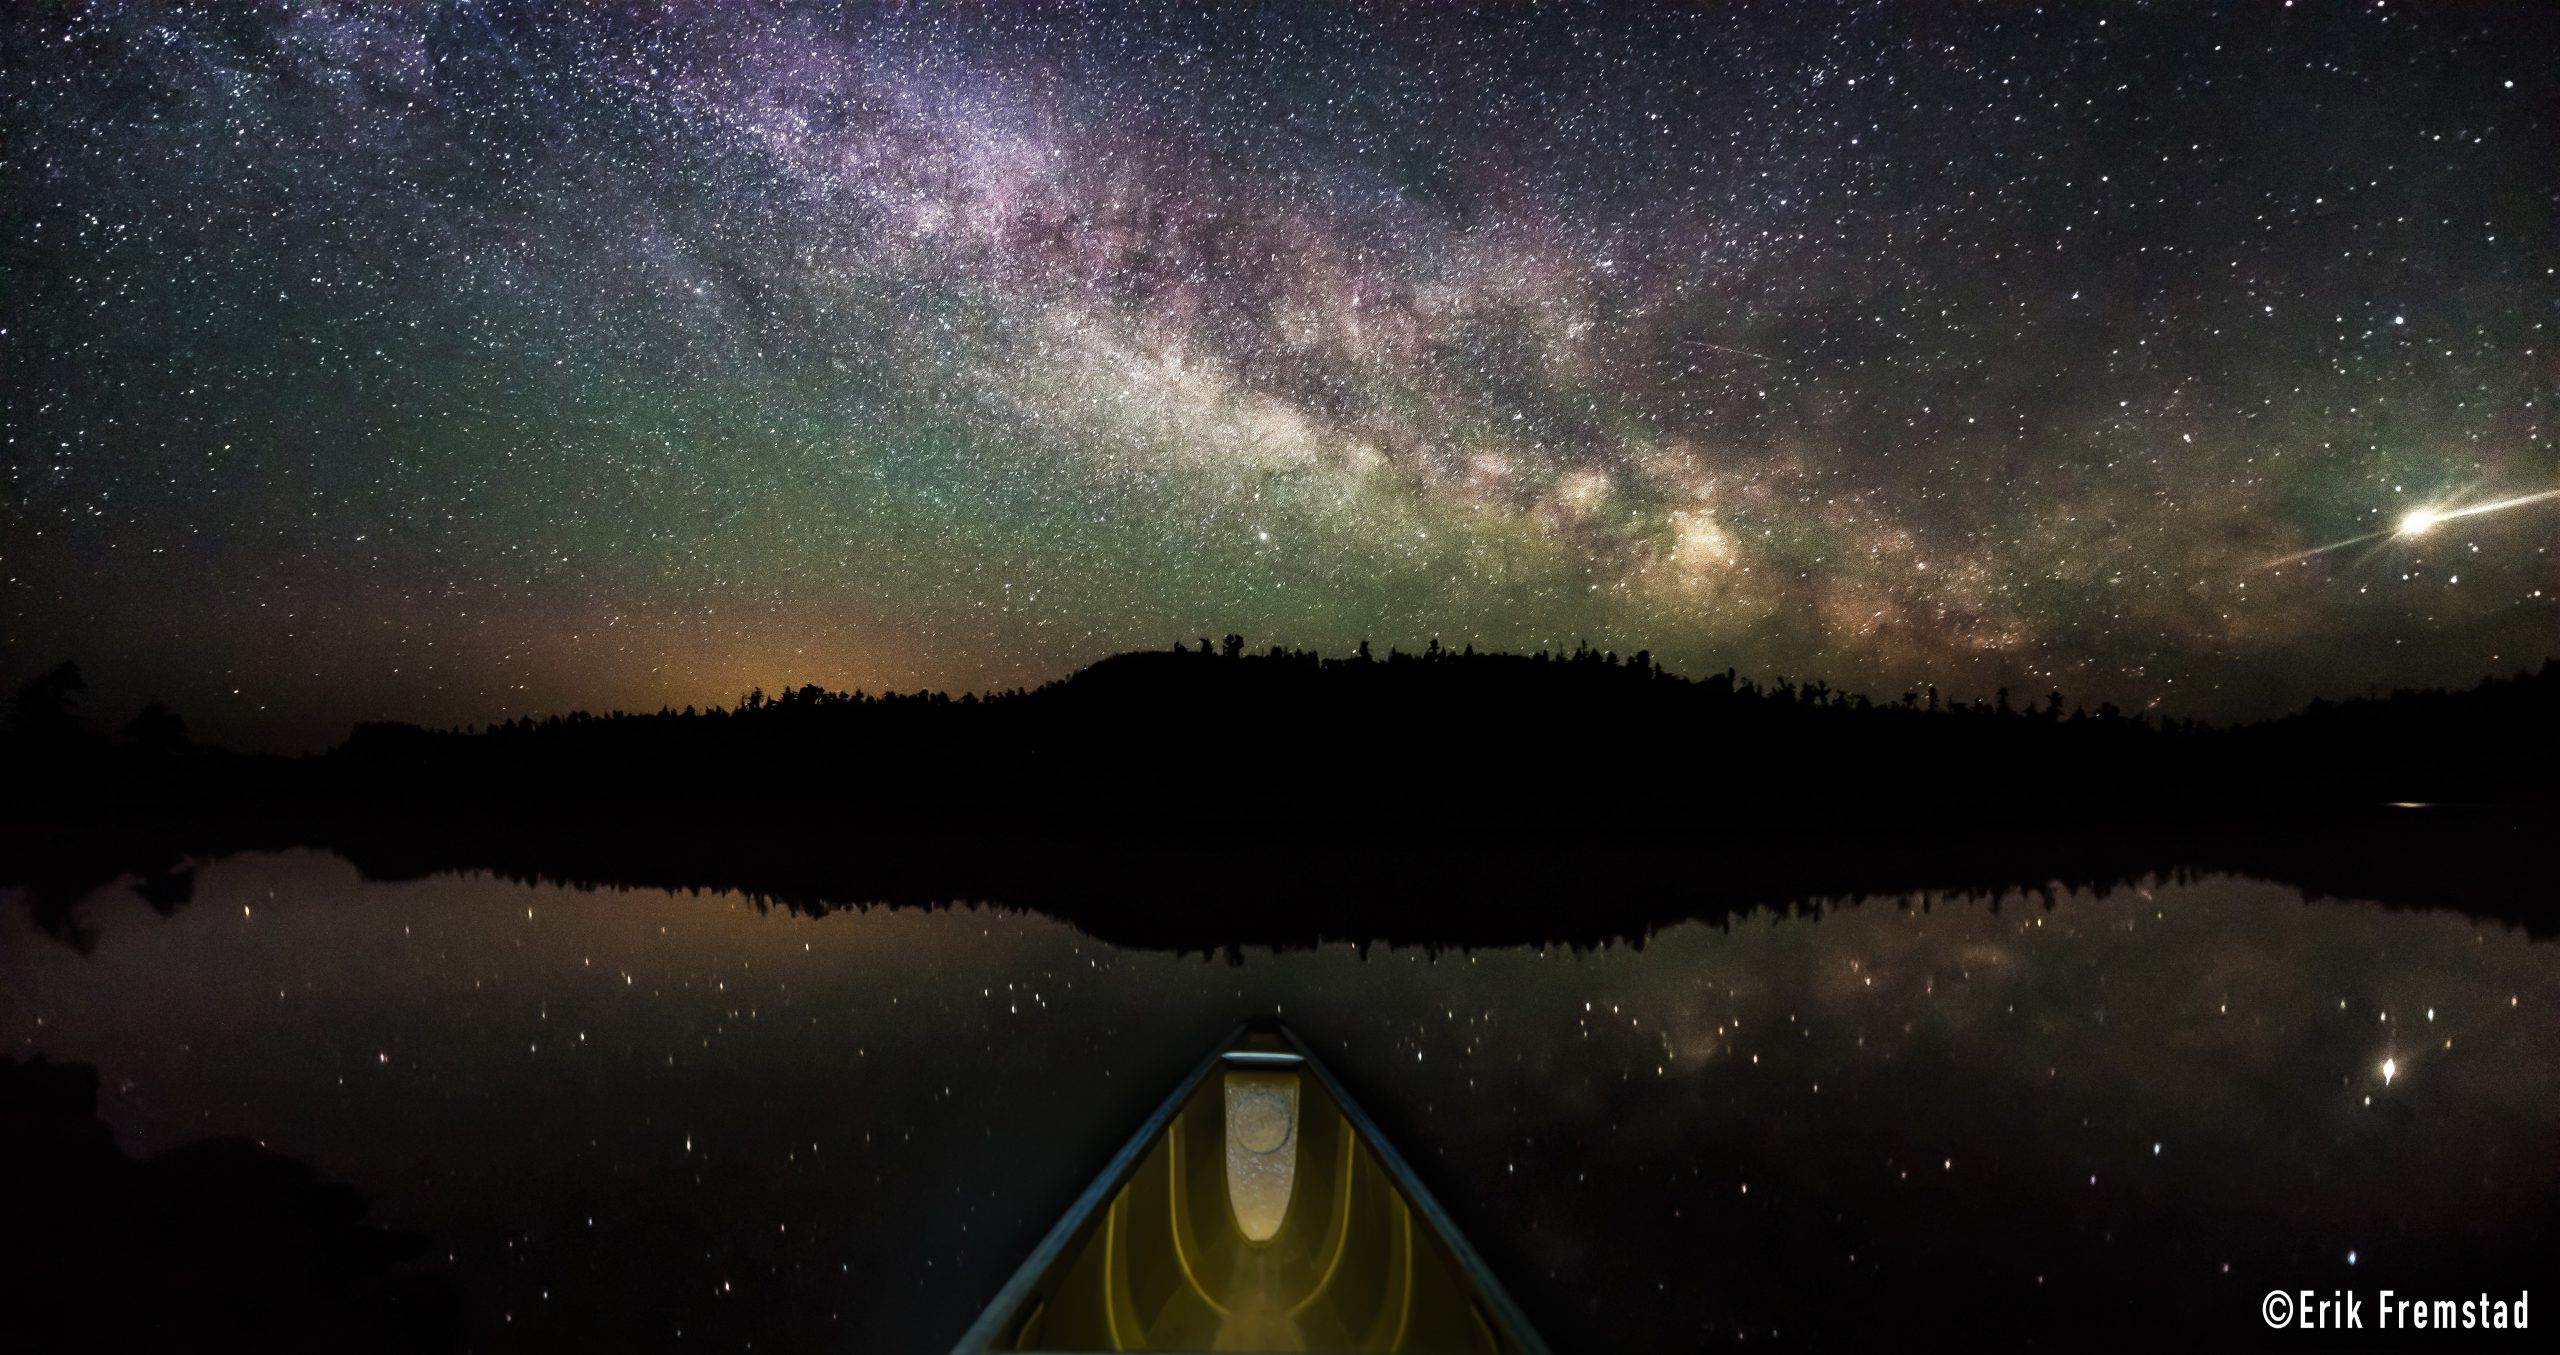 Boundary Waters Canoe Area Wilderness Named the Largest Dark Sky Sanctuary Image